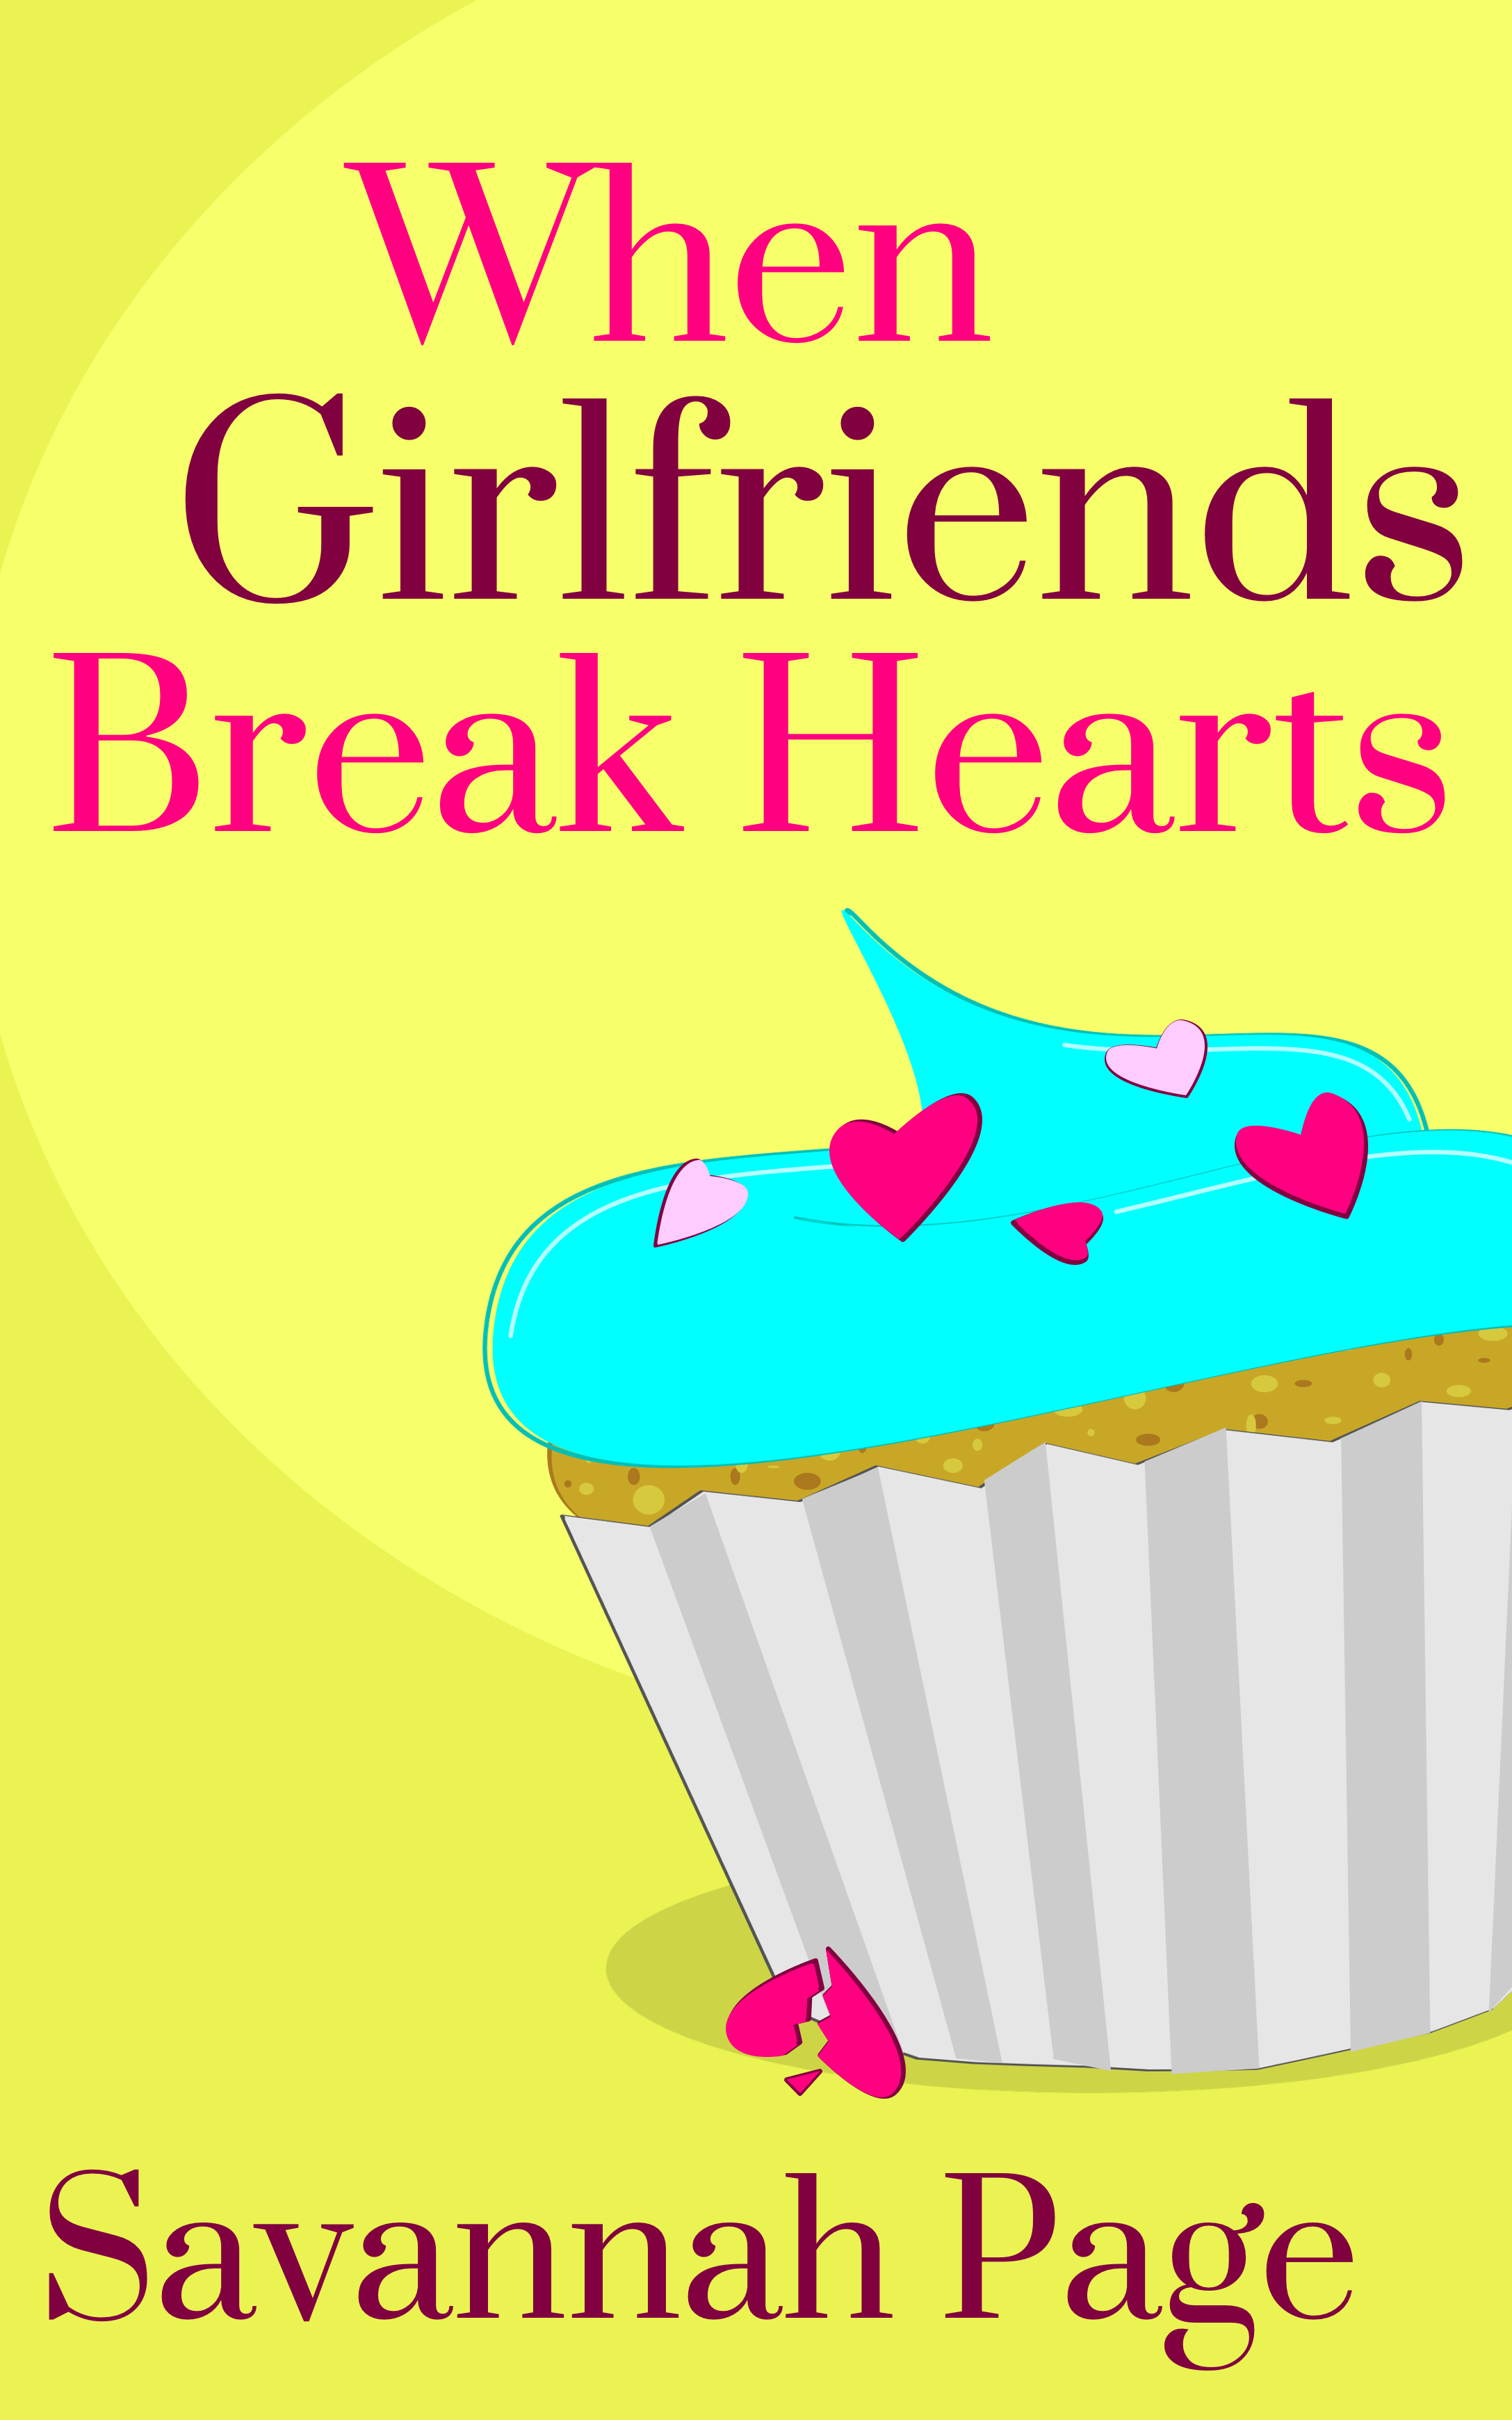 When Girlfriends Break Hearts By Savannah Page - EBook Cover